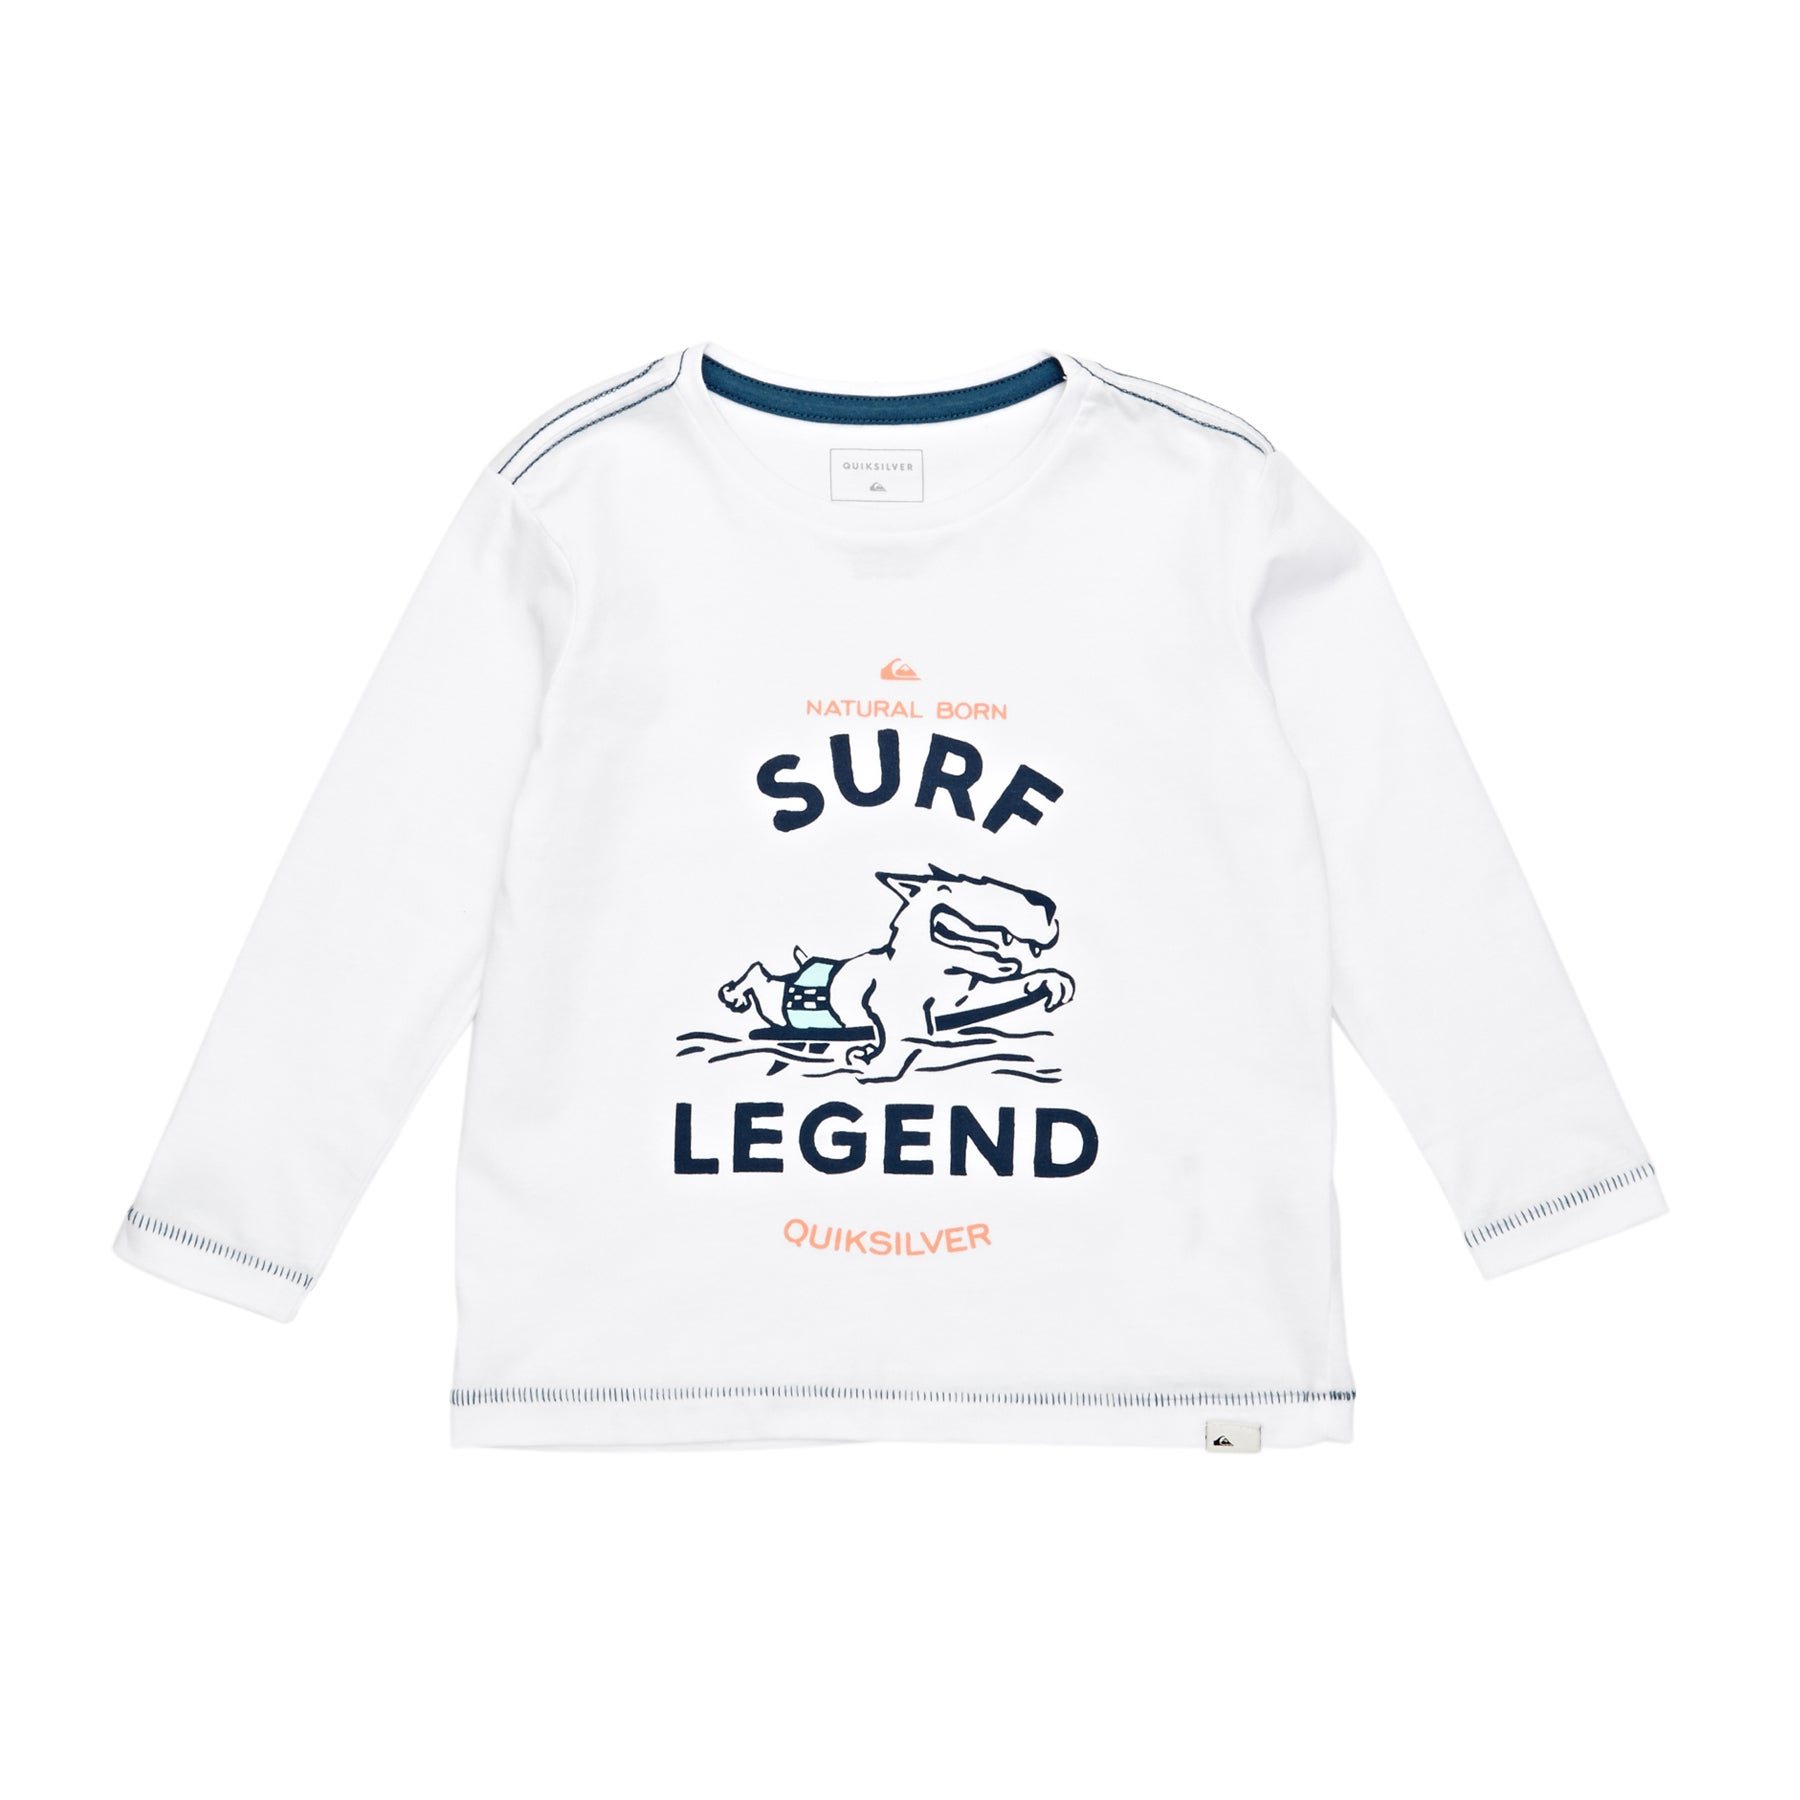 Quiksilver Surf Legend Boys Long Sleeve T-Shirt - White